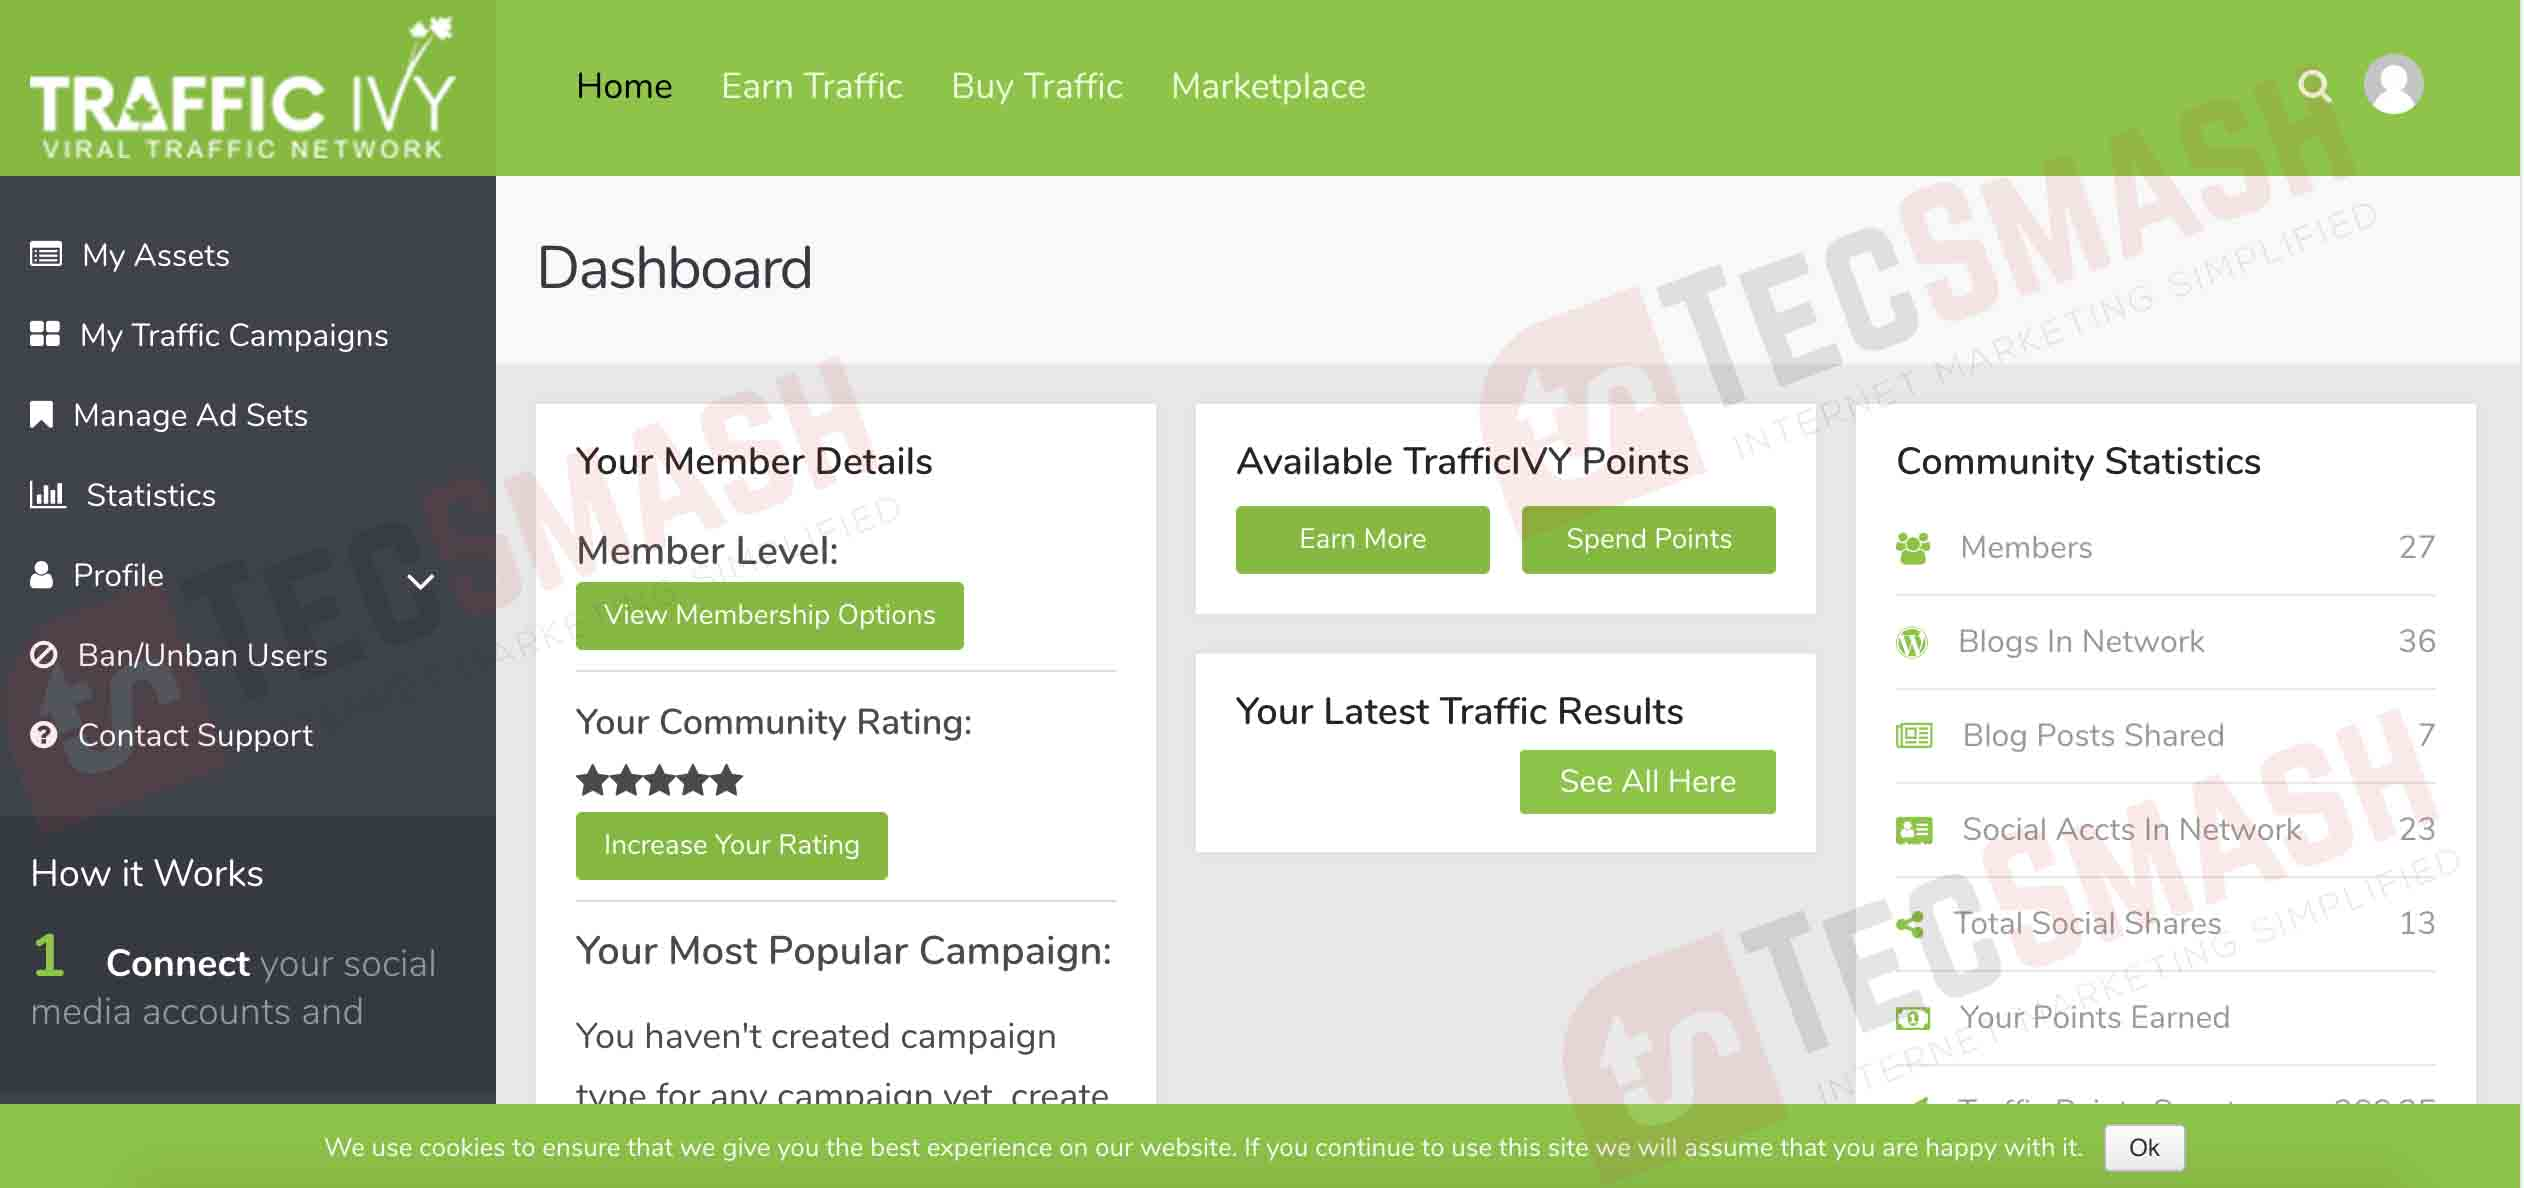 Traffic Ivy: Real FREE Traffic Anytime You Need